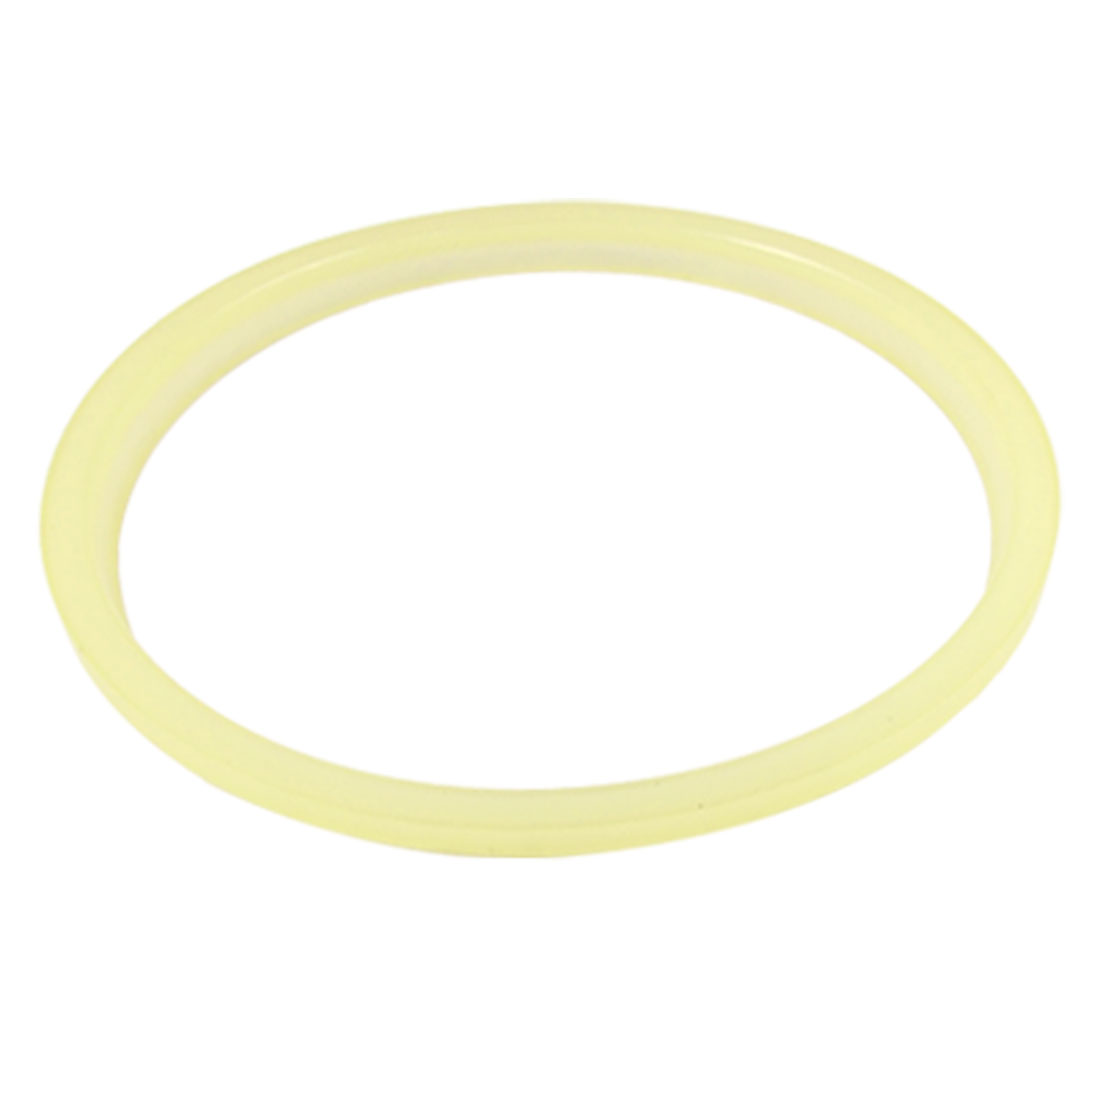 Cylinder Piston Rod J PU Single Lip Dust Wiper Seal 190mm x 210mm x 7mm